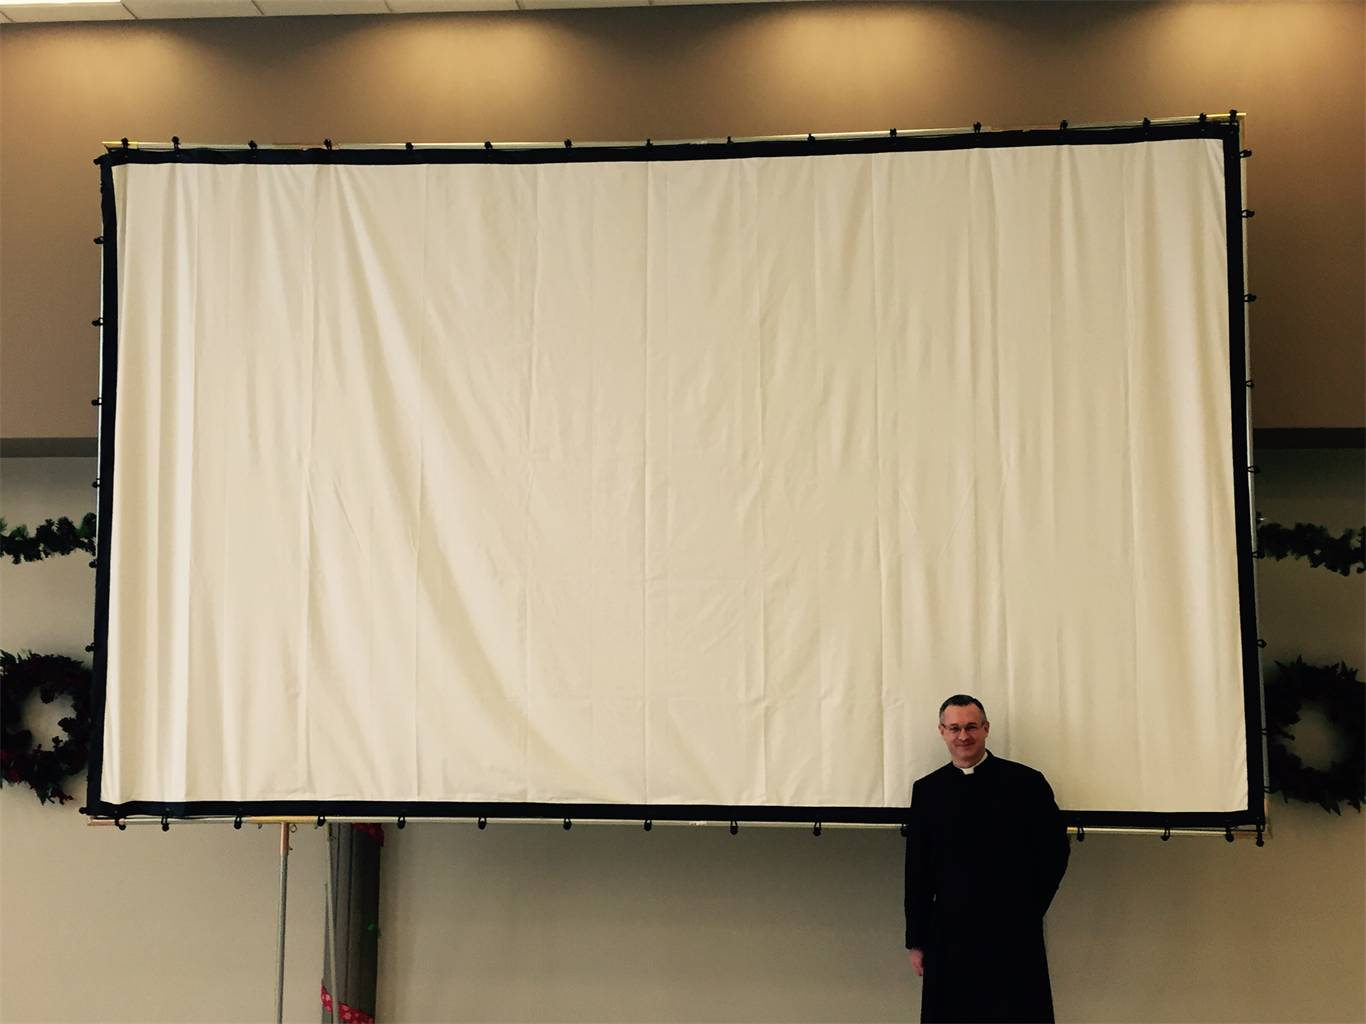 OUR NEW MOVIE SCREEN IS READY FOR WEDNESDAY!!!